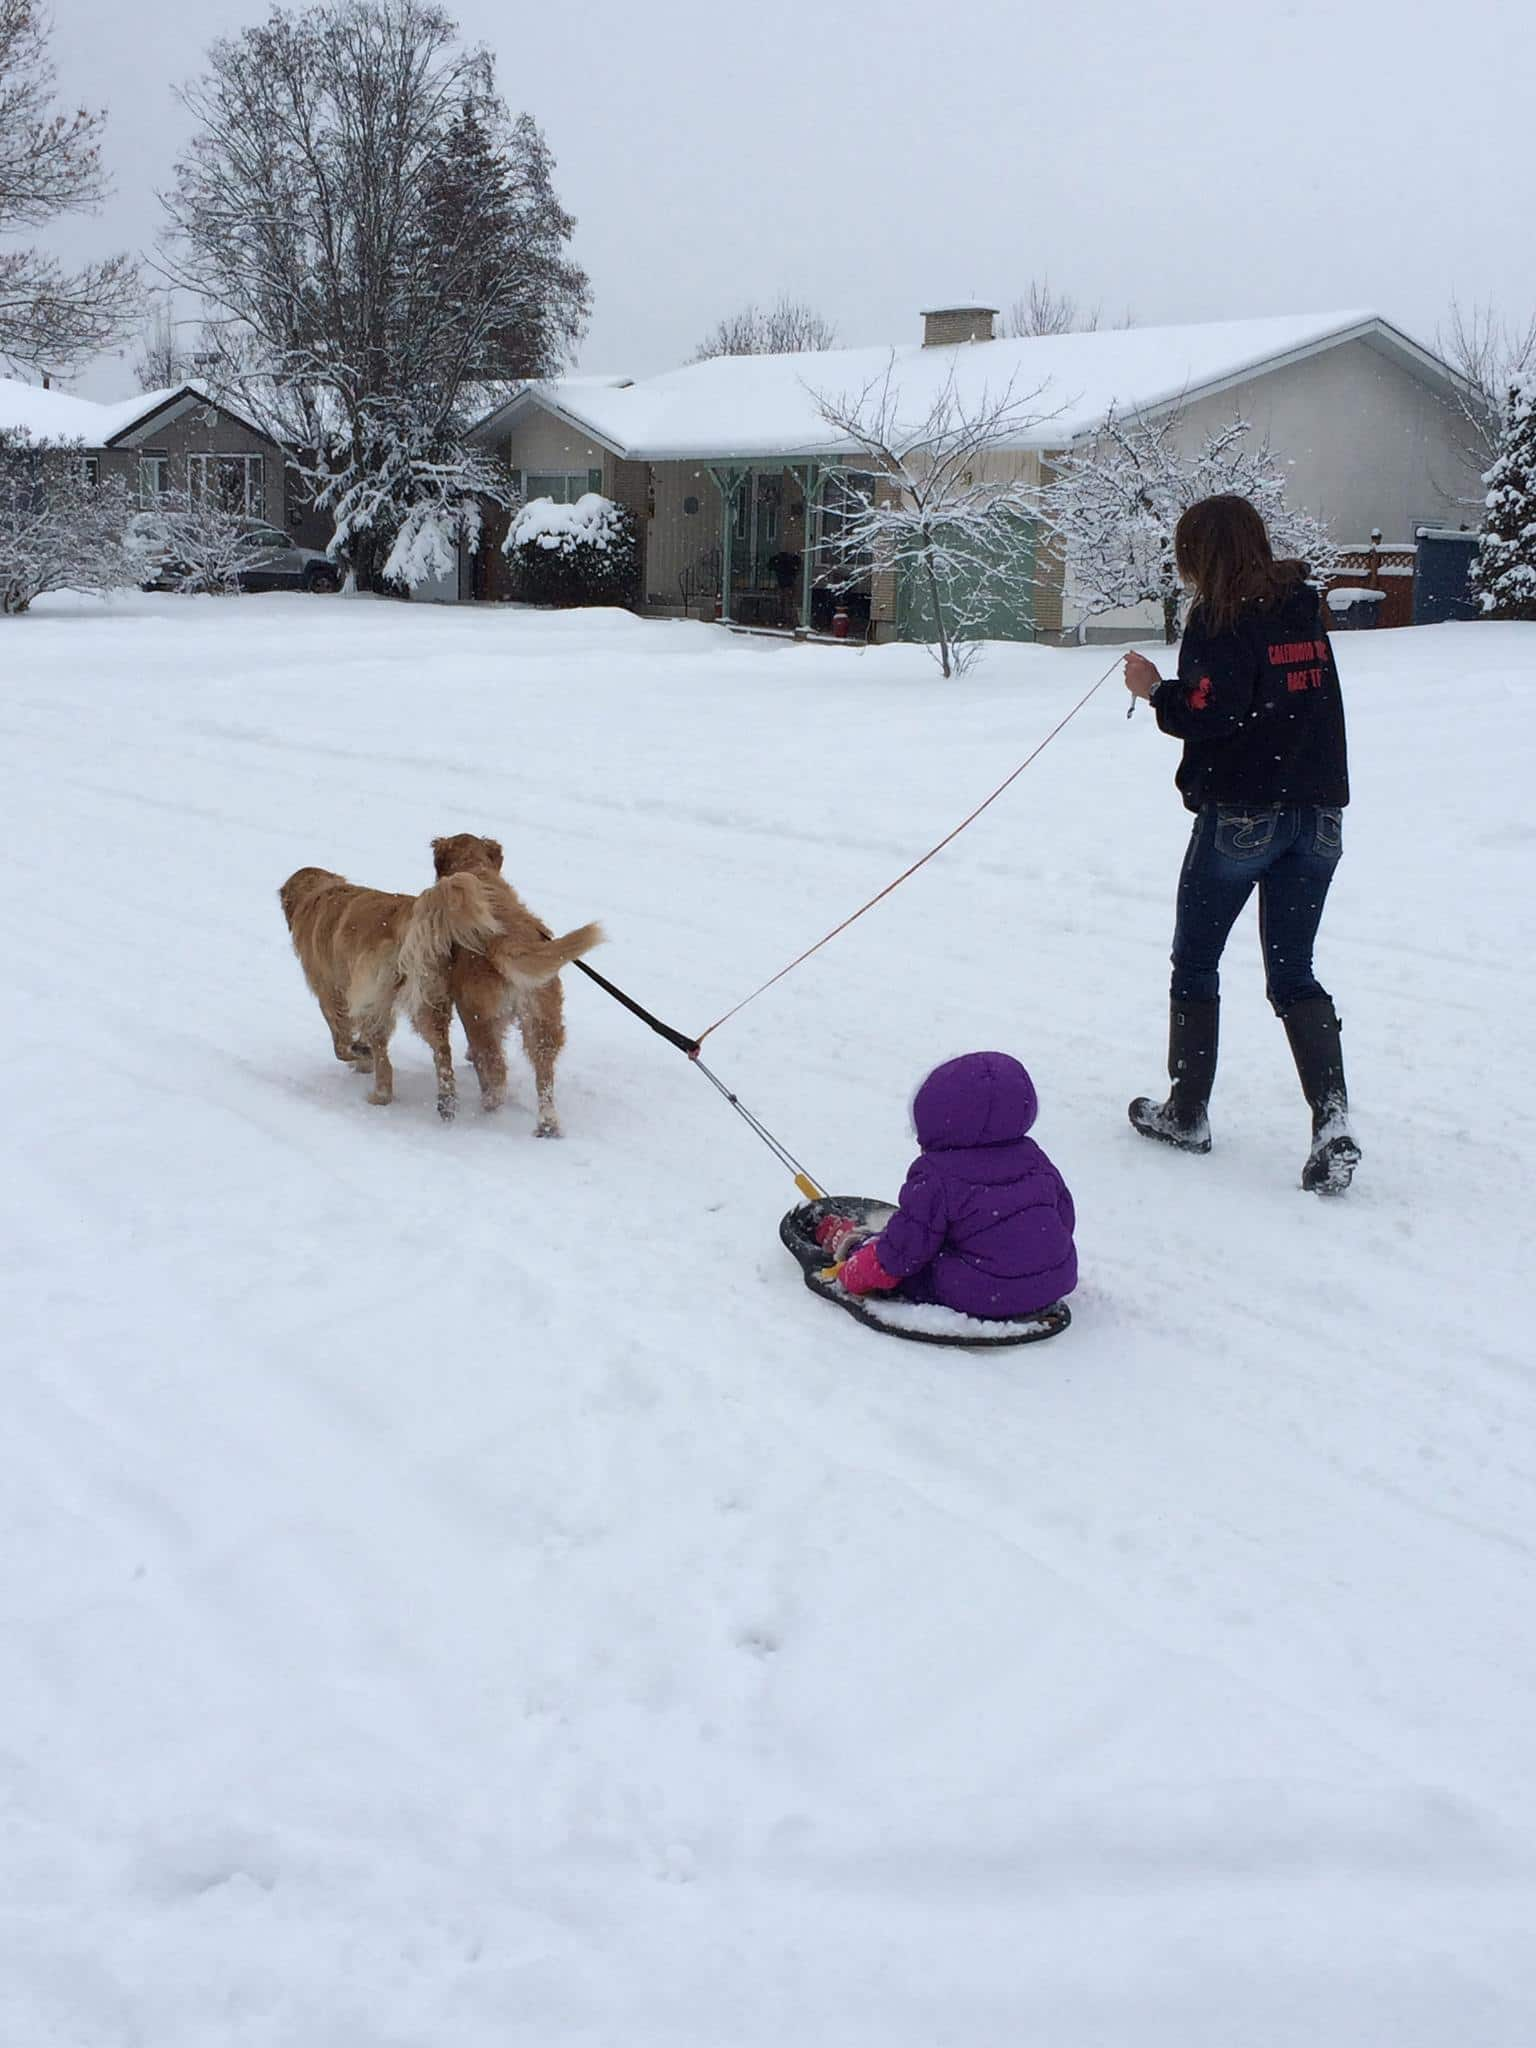 A kid on a sled pulled by two dogs.